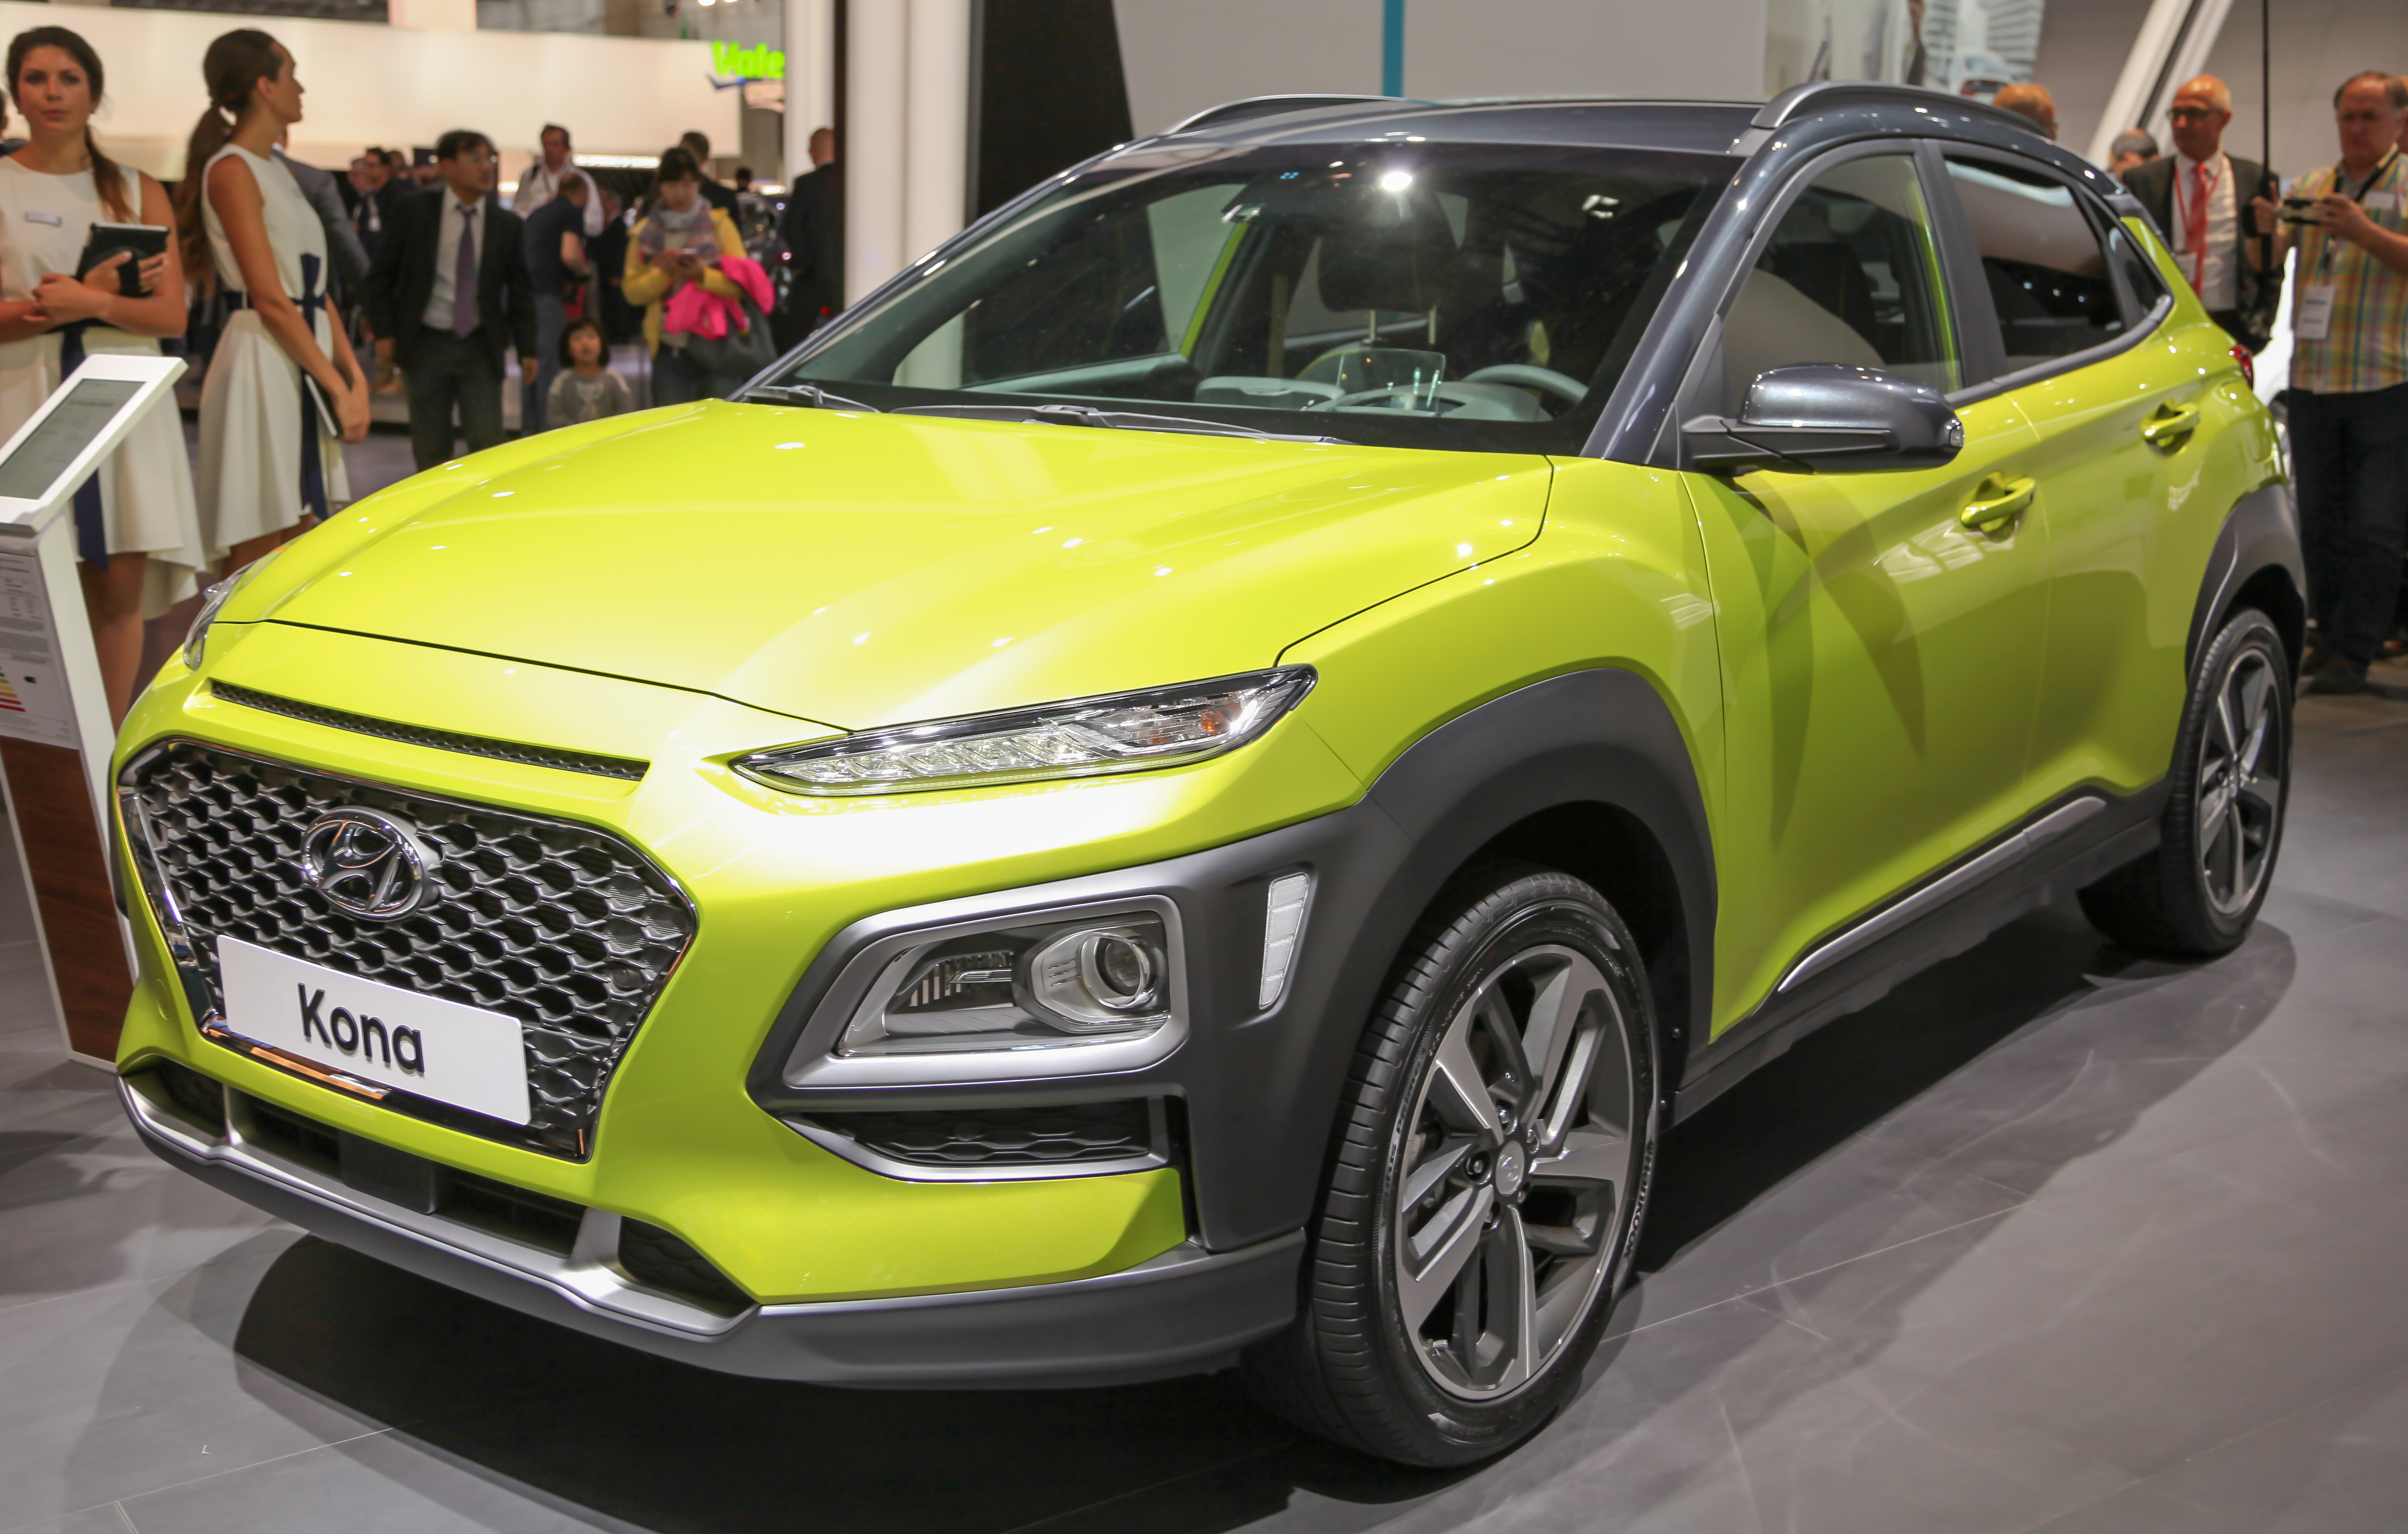 New Cars Revealed at the LA Auto Show